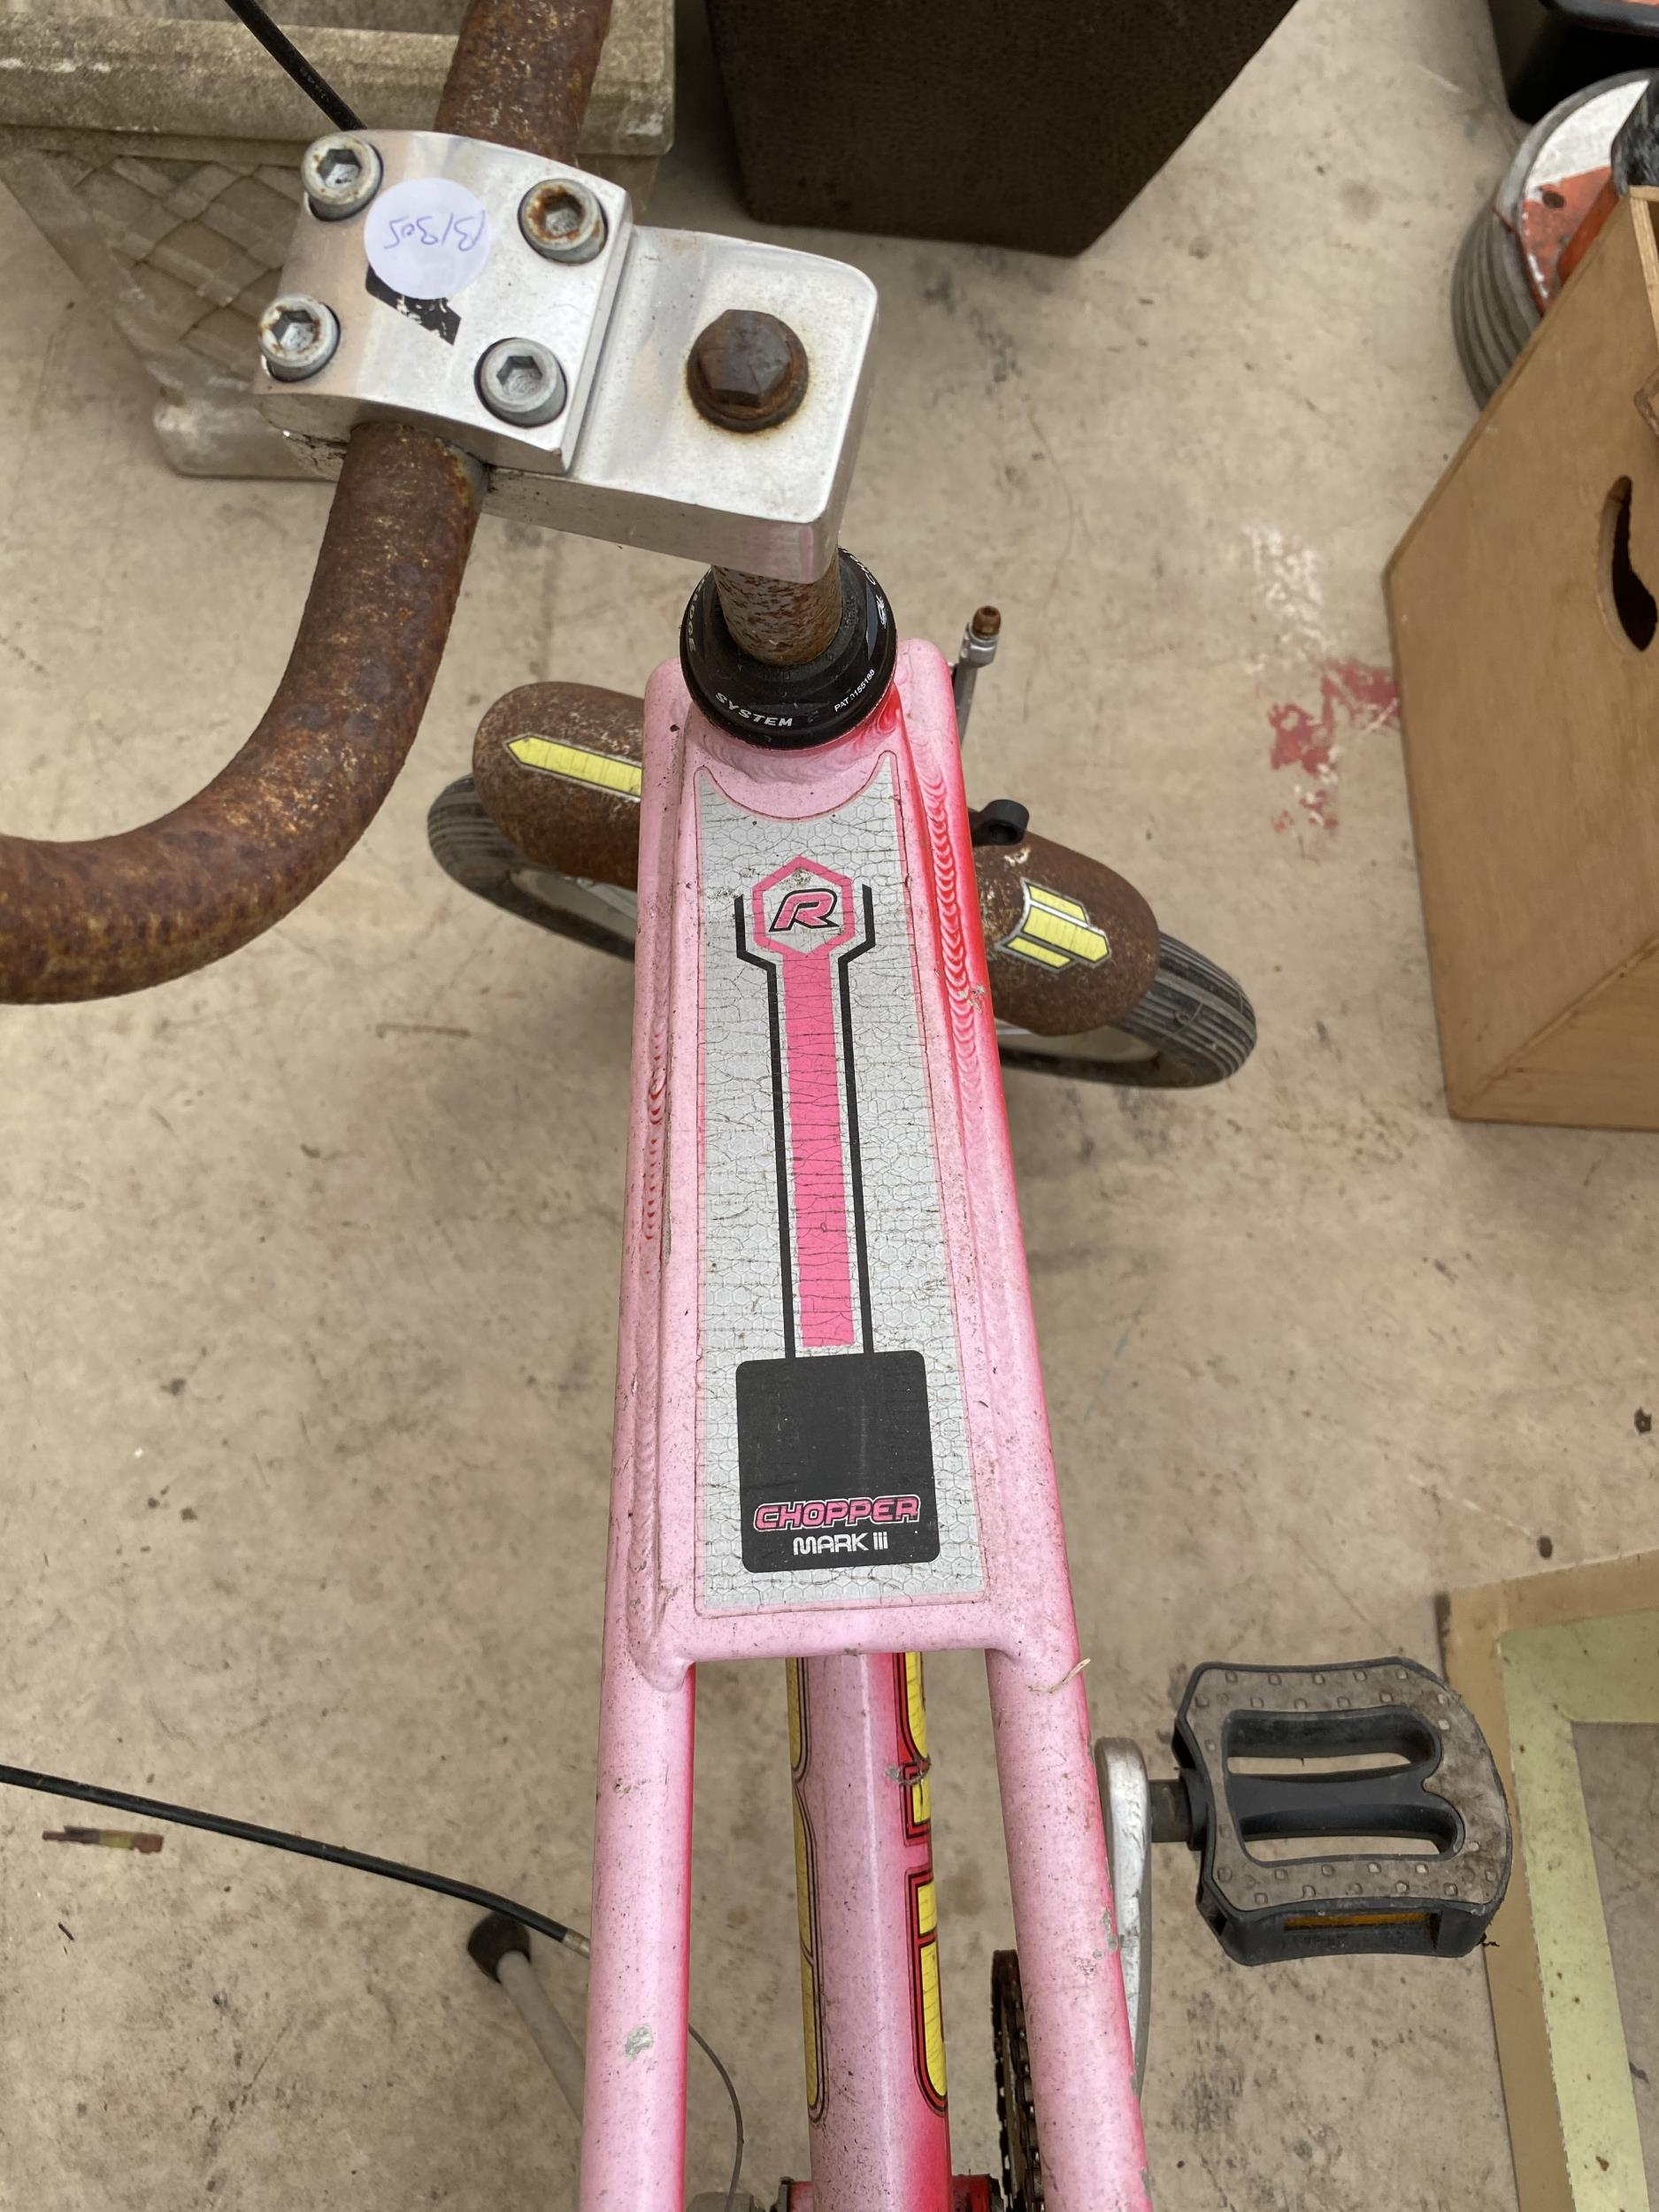 A RALEIGH CHOPPER MARK 3 BICYCLE - Image 7 of 7